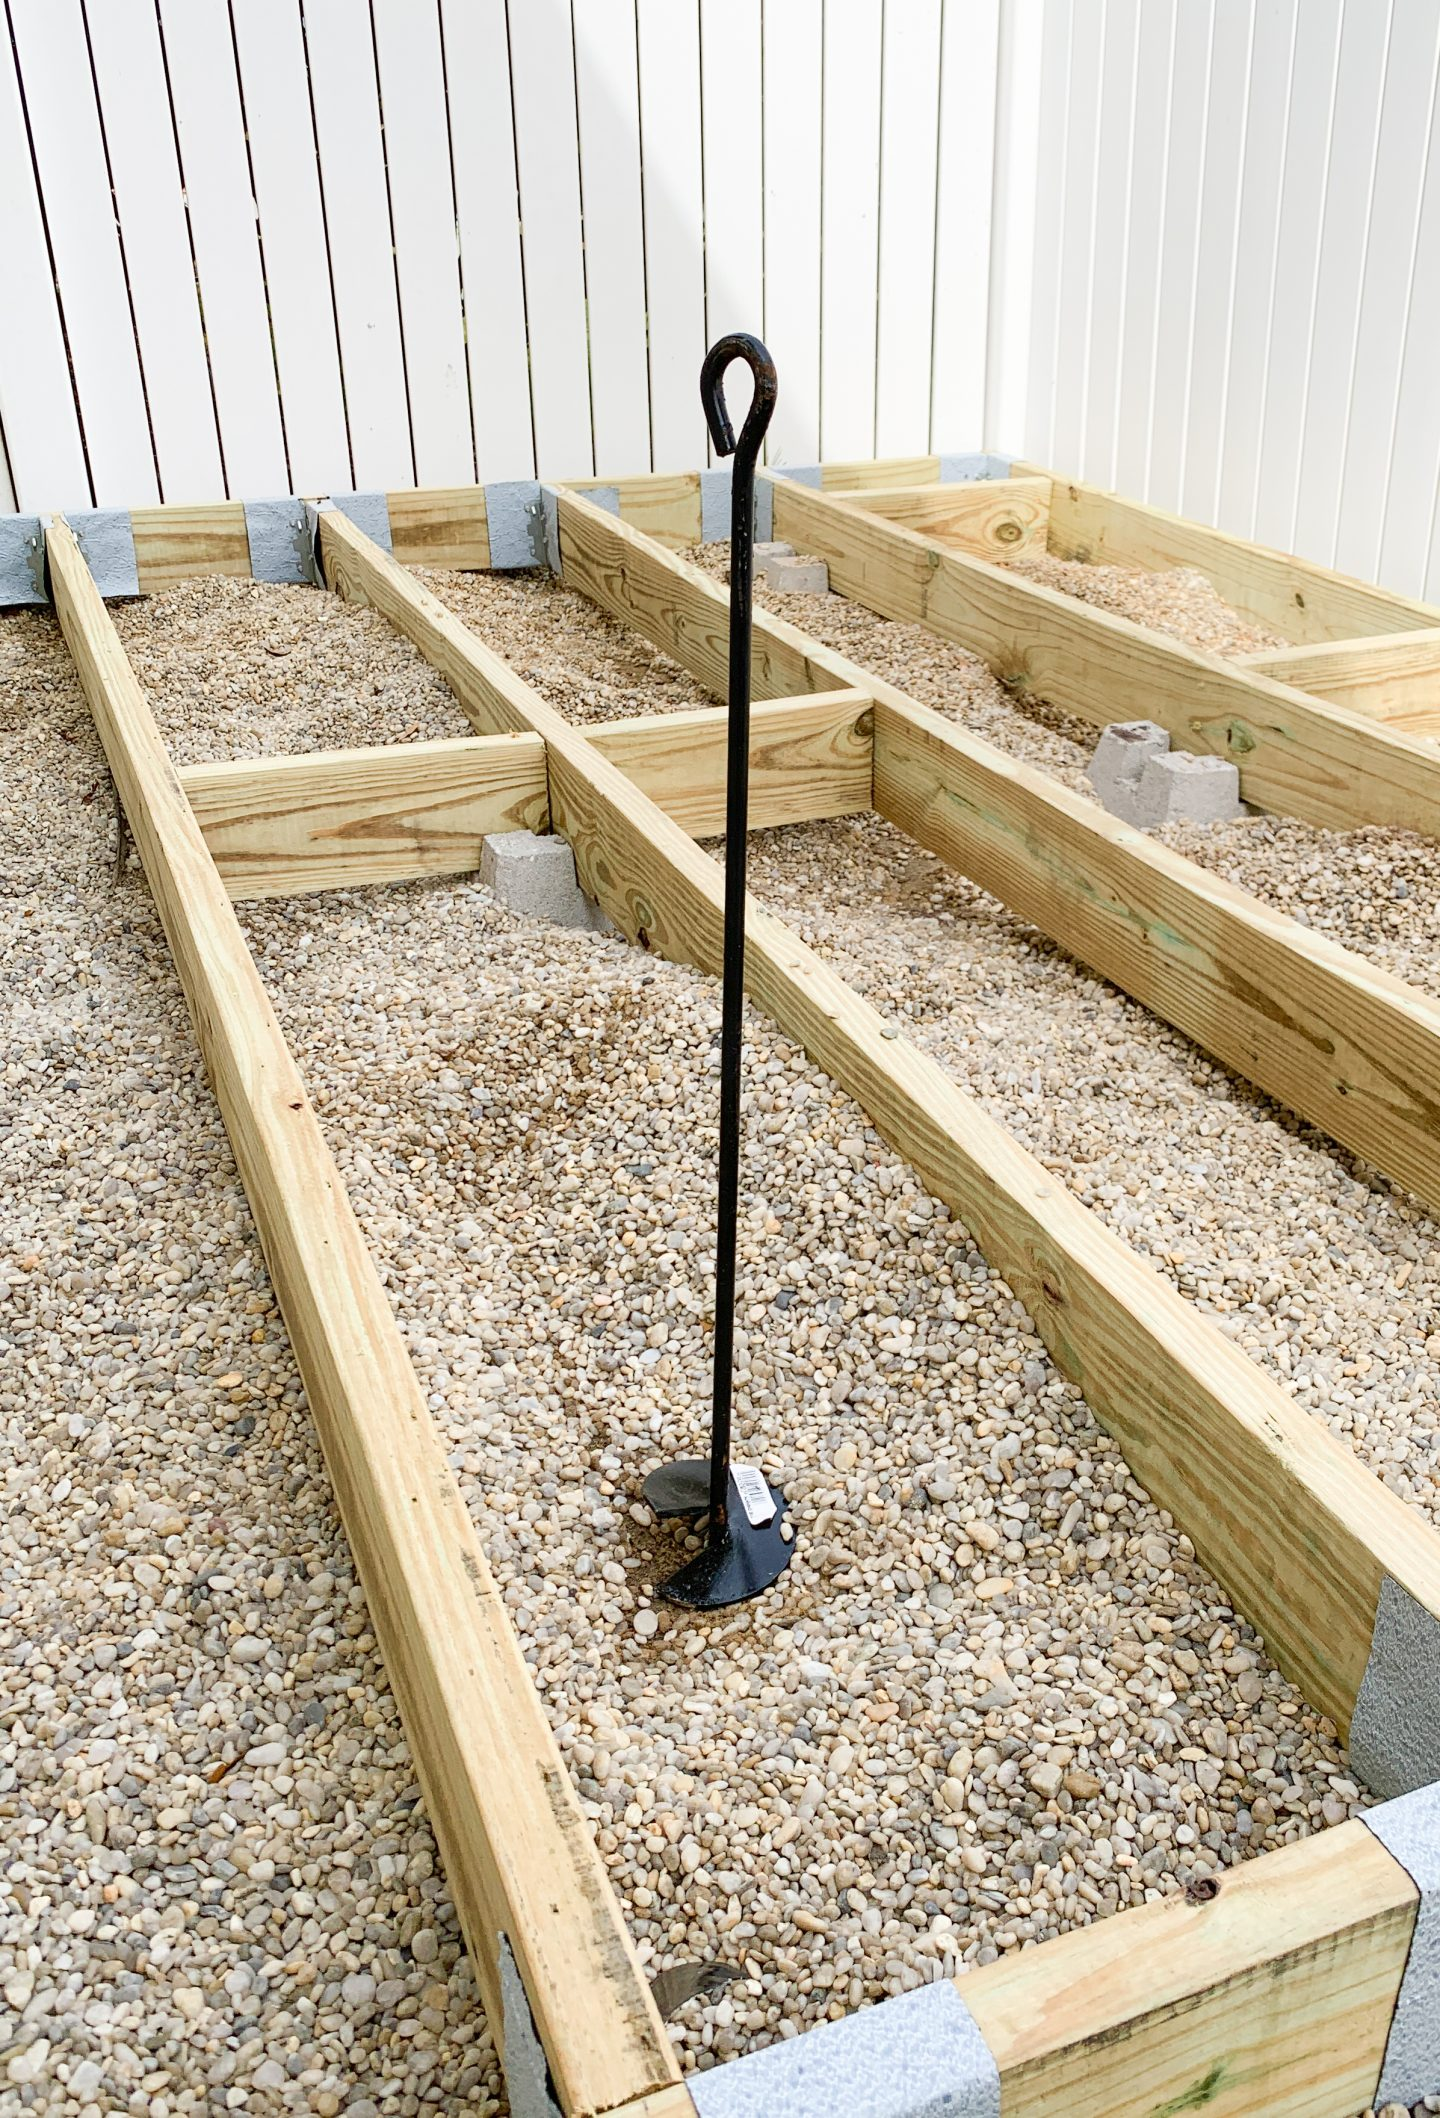 Shed anchor to hold down DIY wood deck